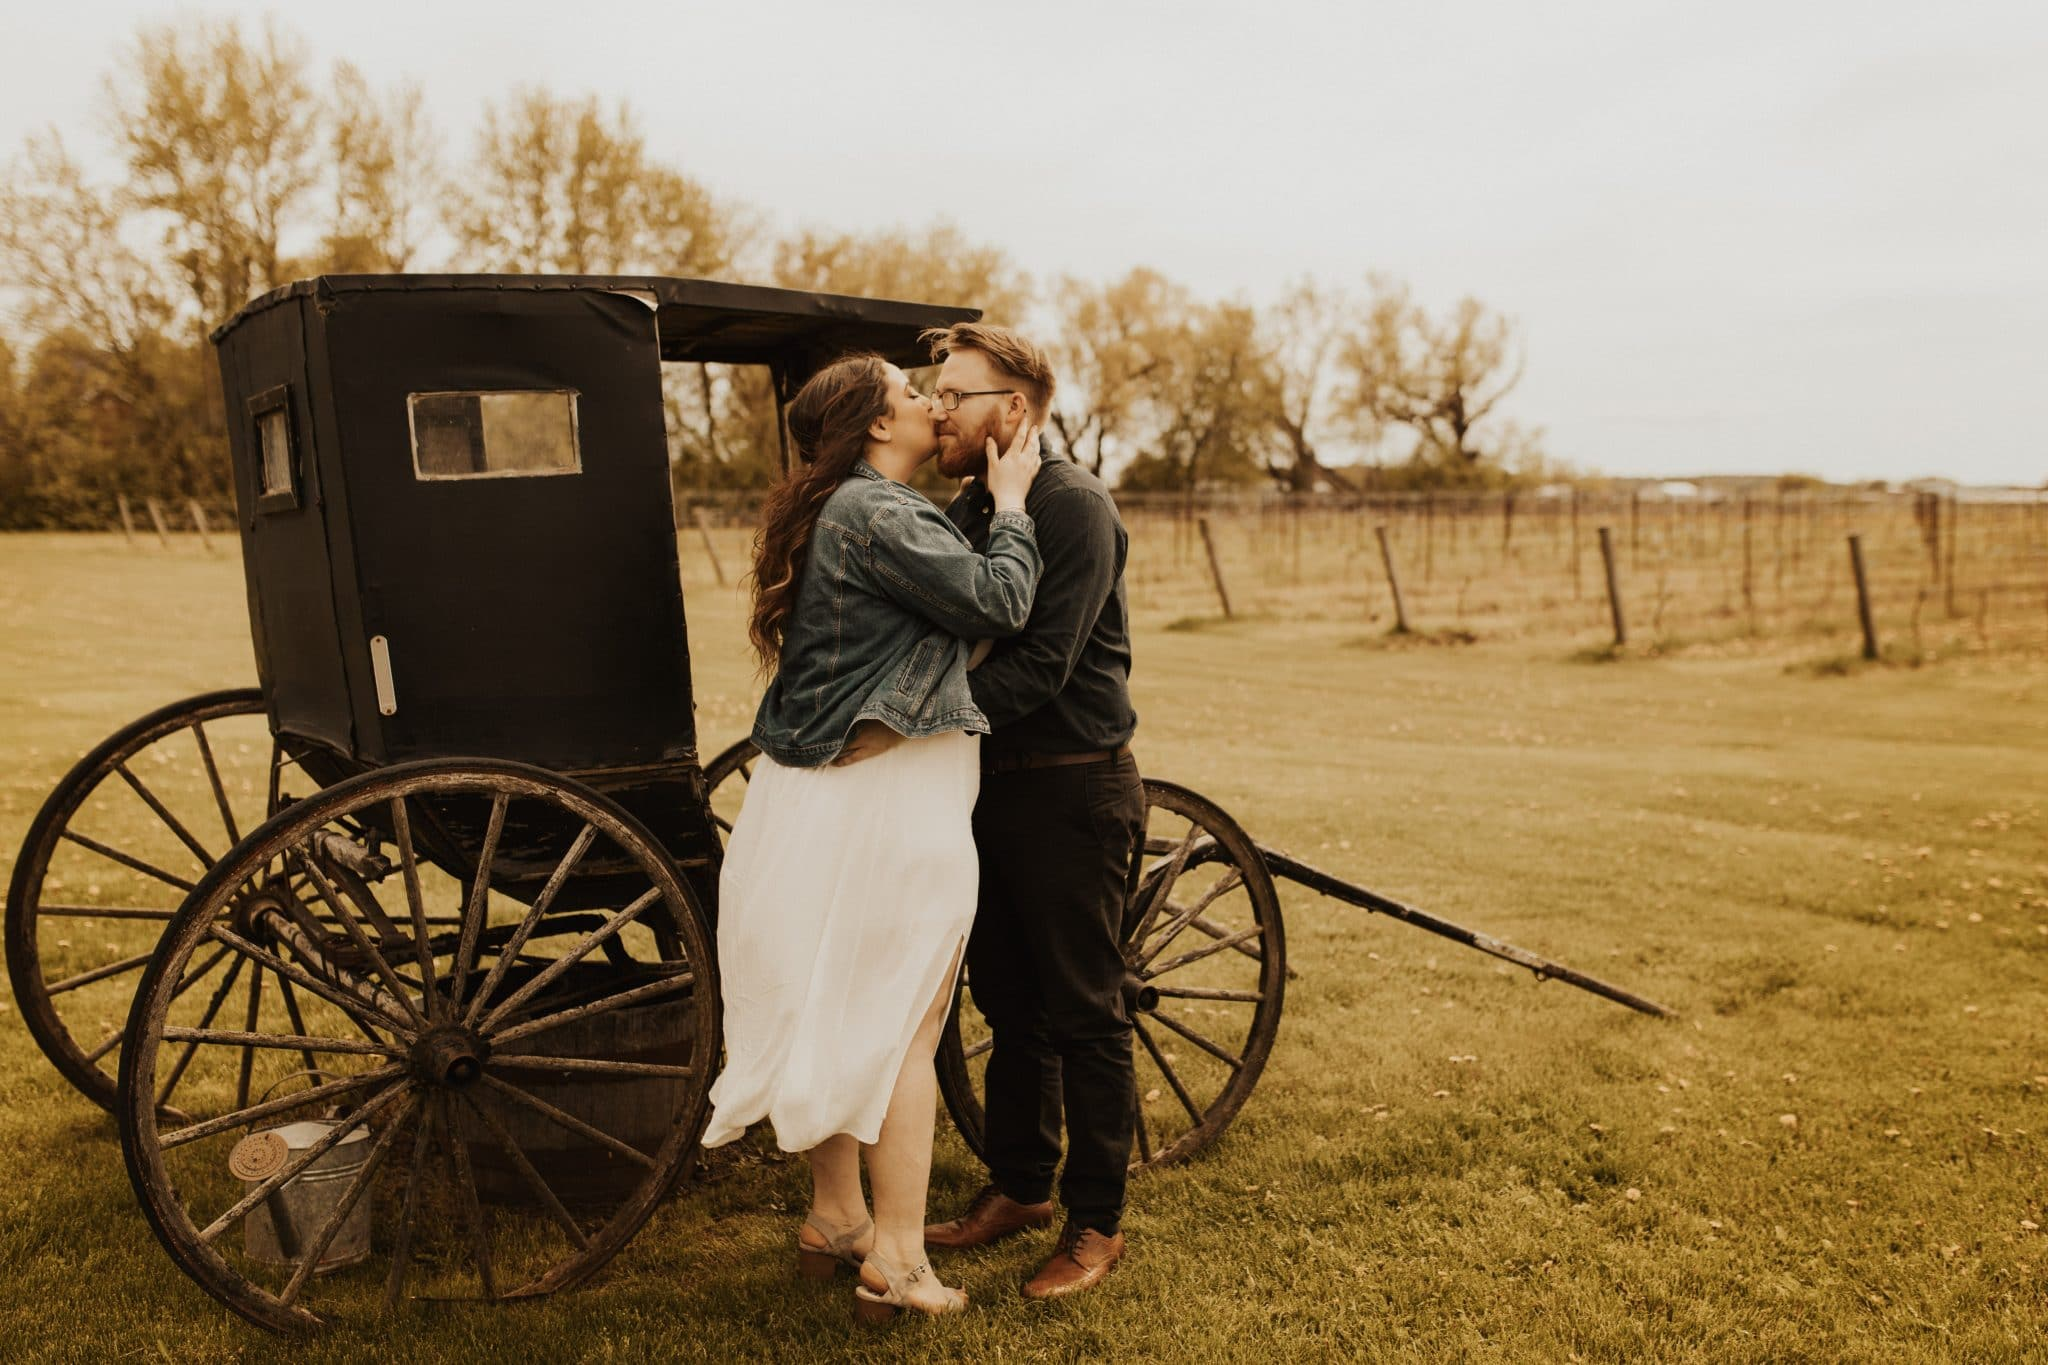 Outdoor Engagement Photo Locations in Toronto